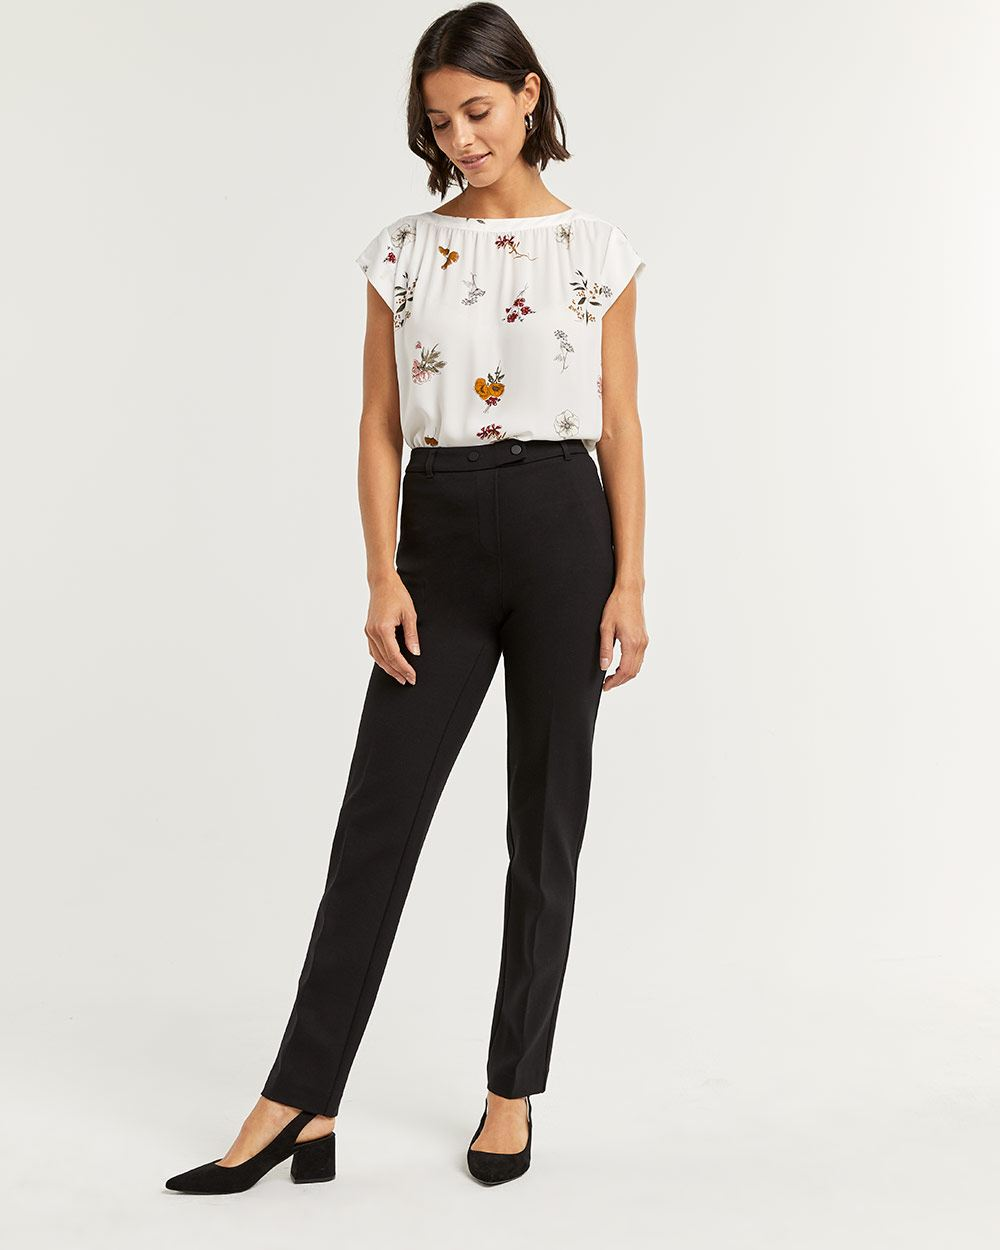 Black Straight Pull On Pants The Modern Stretch - Petite